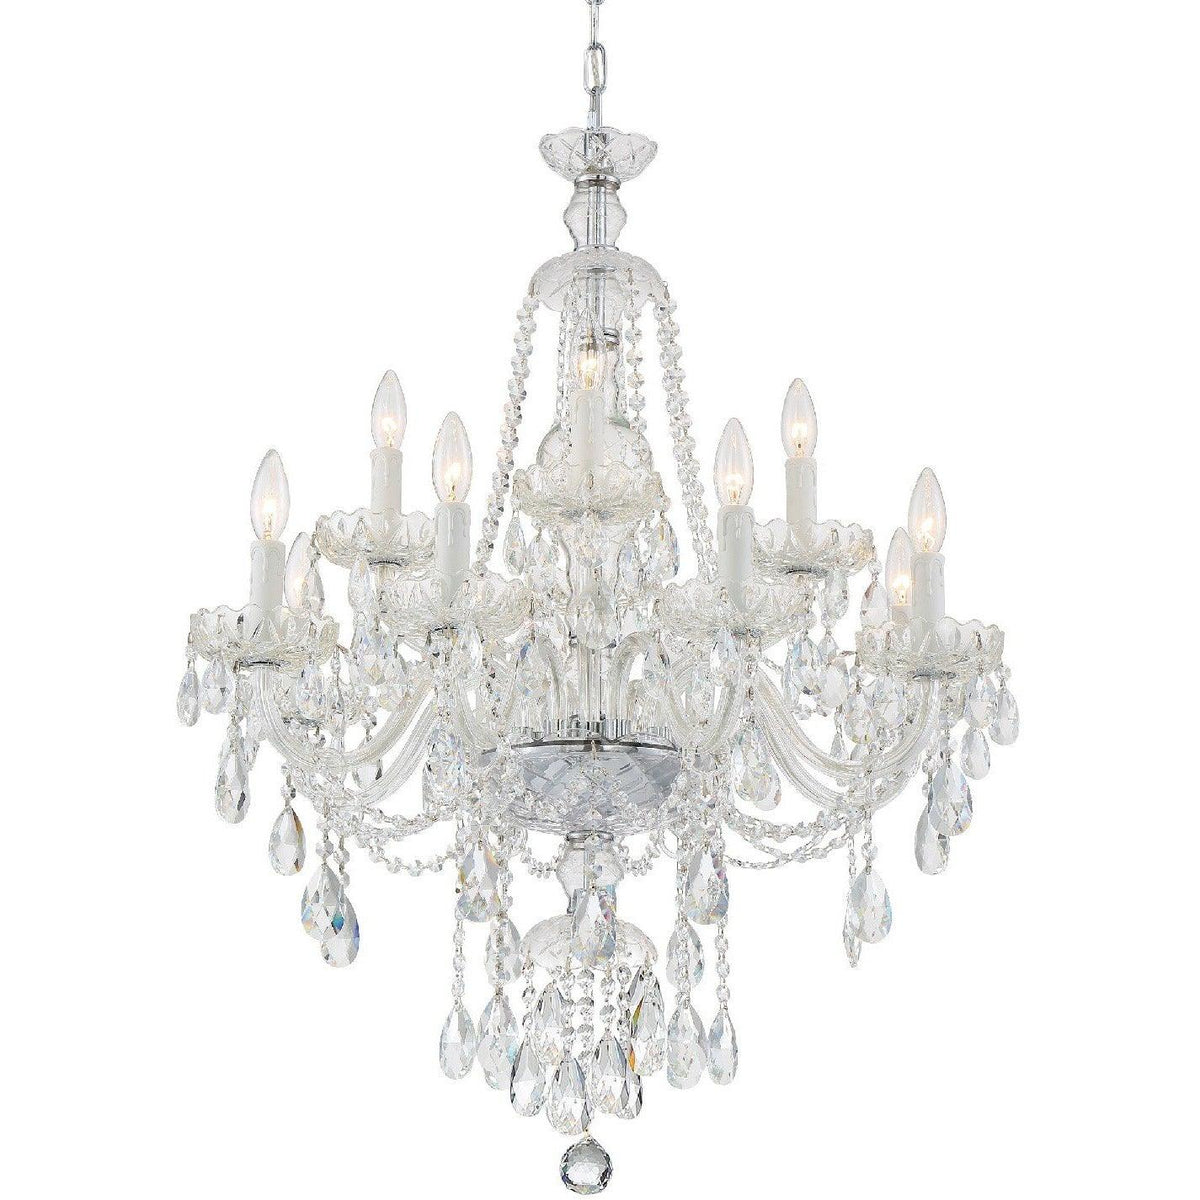 Crystorama - CAN-A1312-CH-CL-S - 12 Light Chandelier - Candace - Polished Chrome